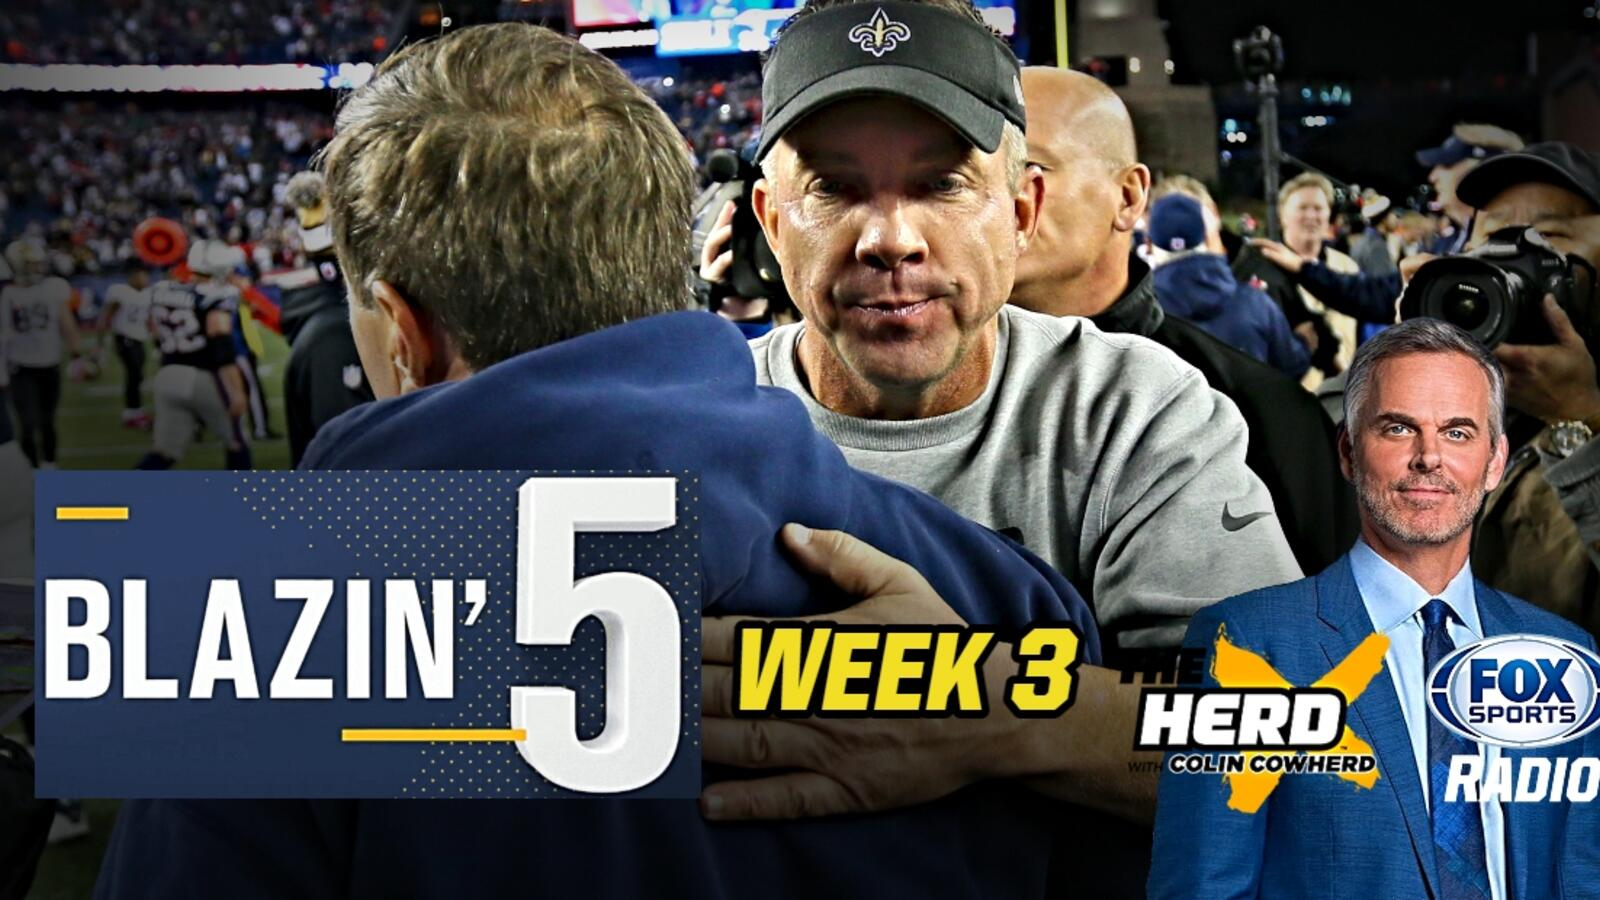 Blazing Five: Colin Cowherd Gives His 5 Best NFL Bets For Week 3 (Sep. 26)